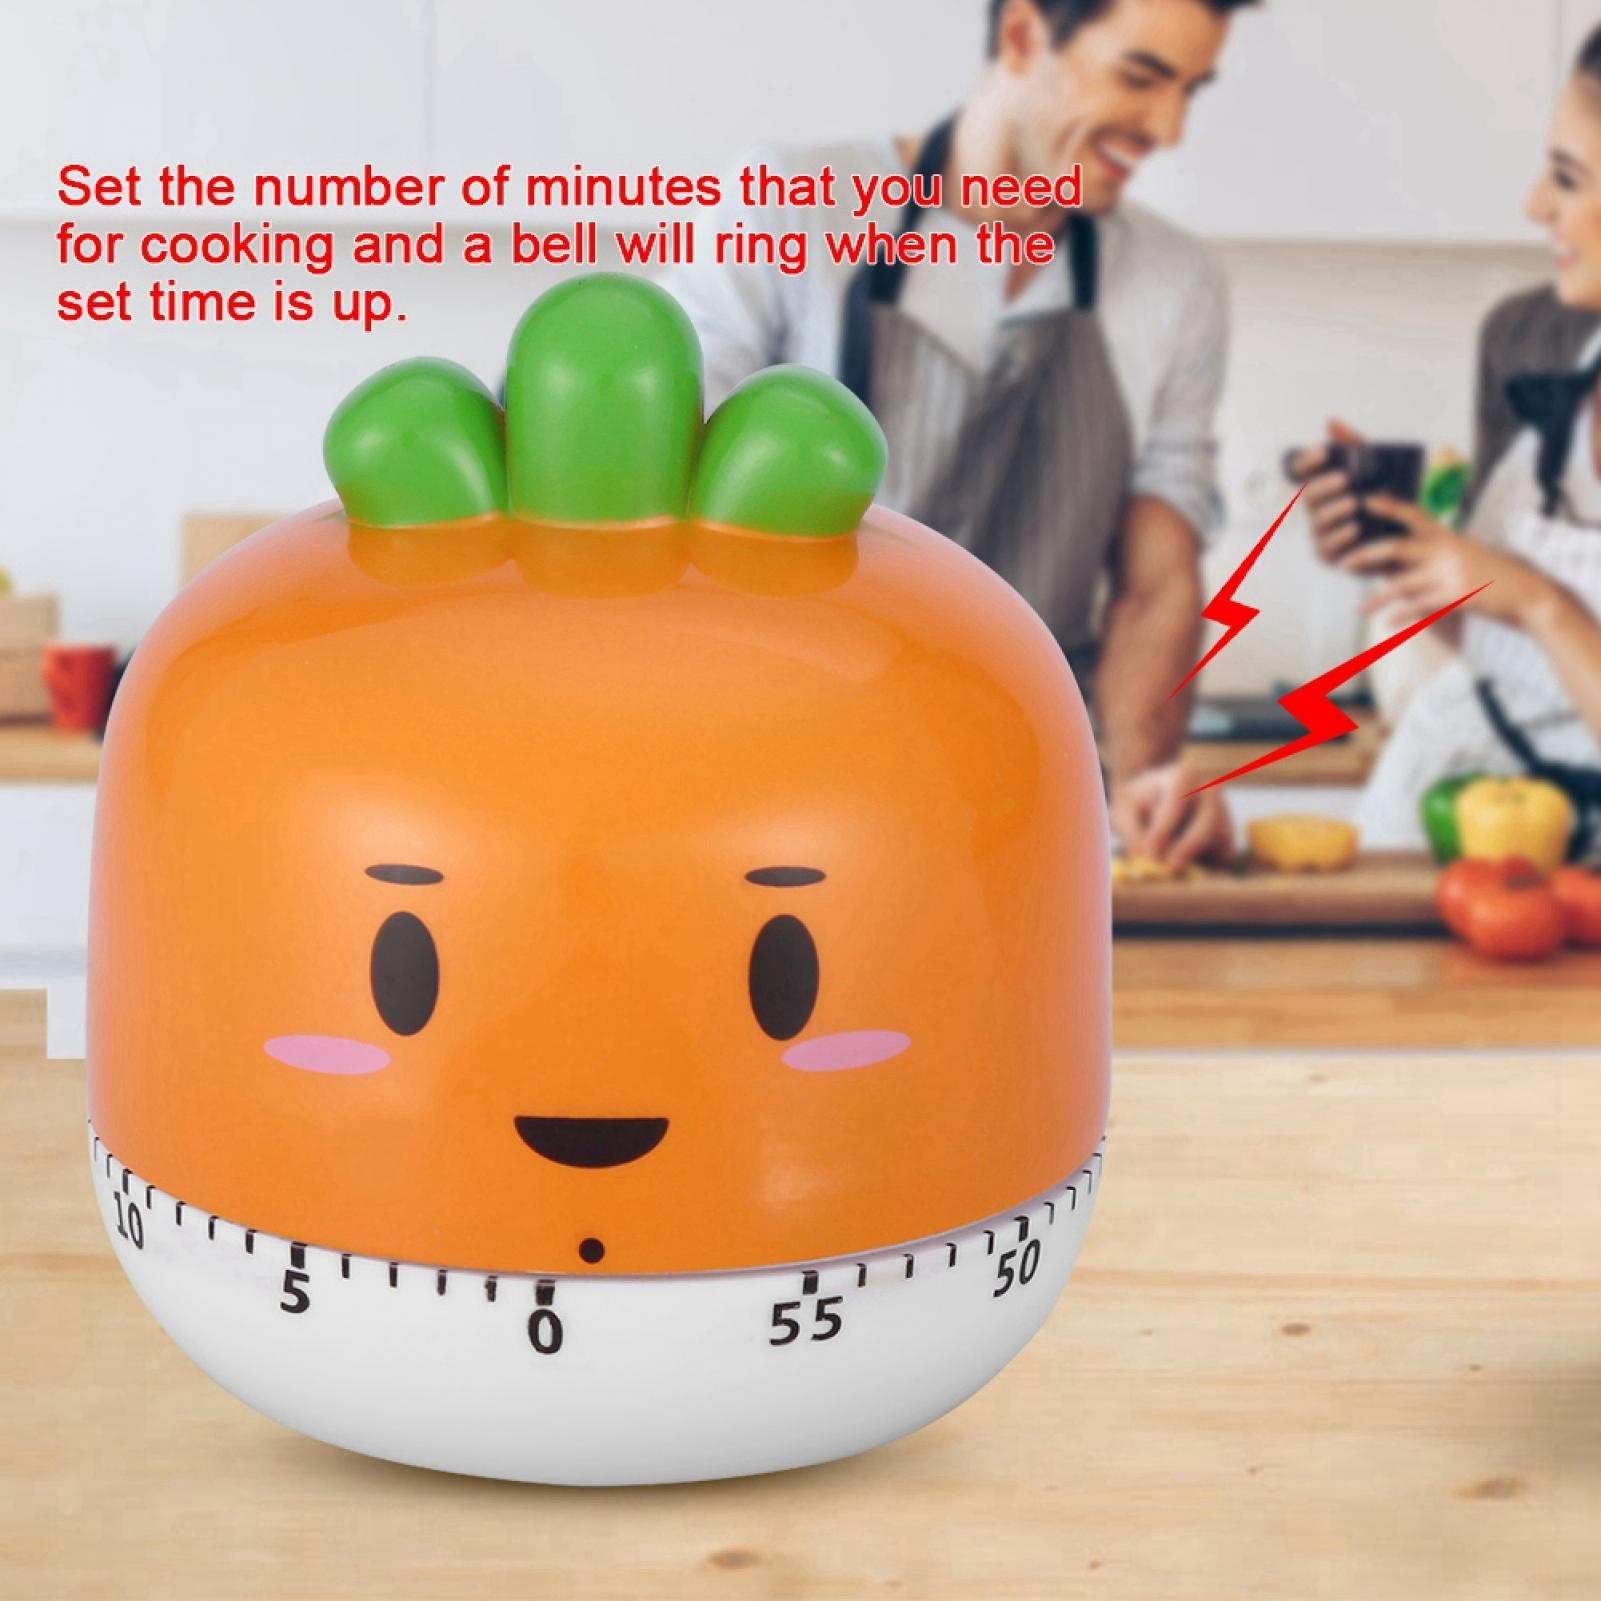 Cute-Cartoon-Kitchen-Timer-Mechanical-Timers-Counters-for-Cooking-Timing-Tool thumbnail 48